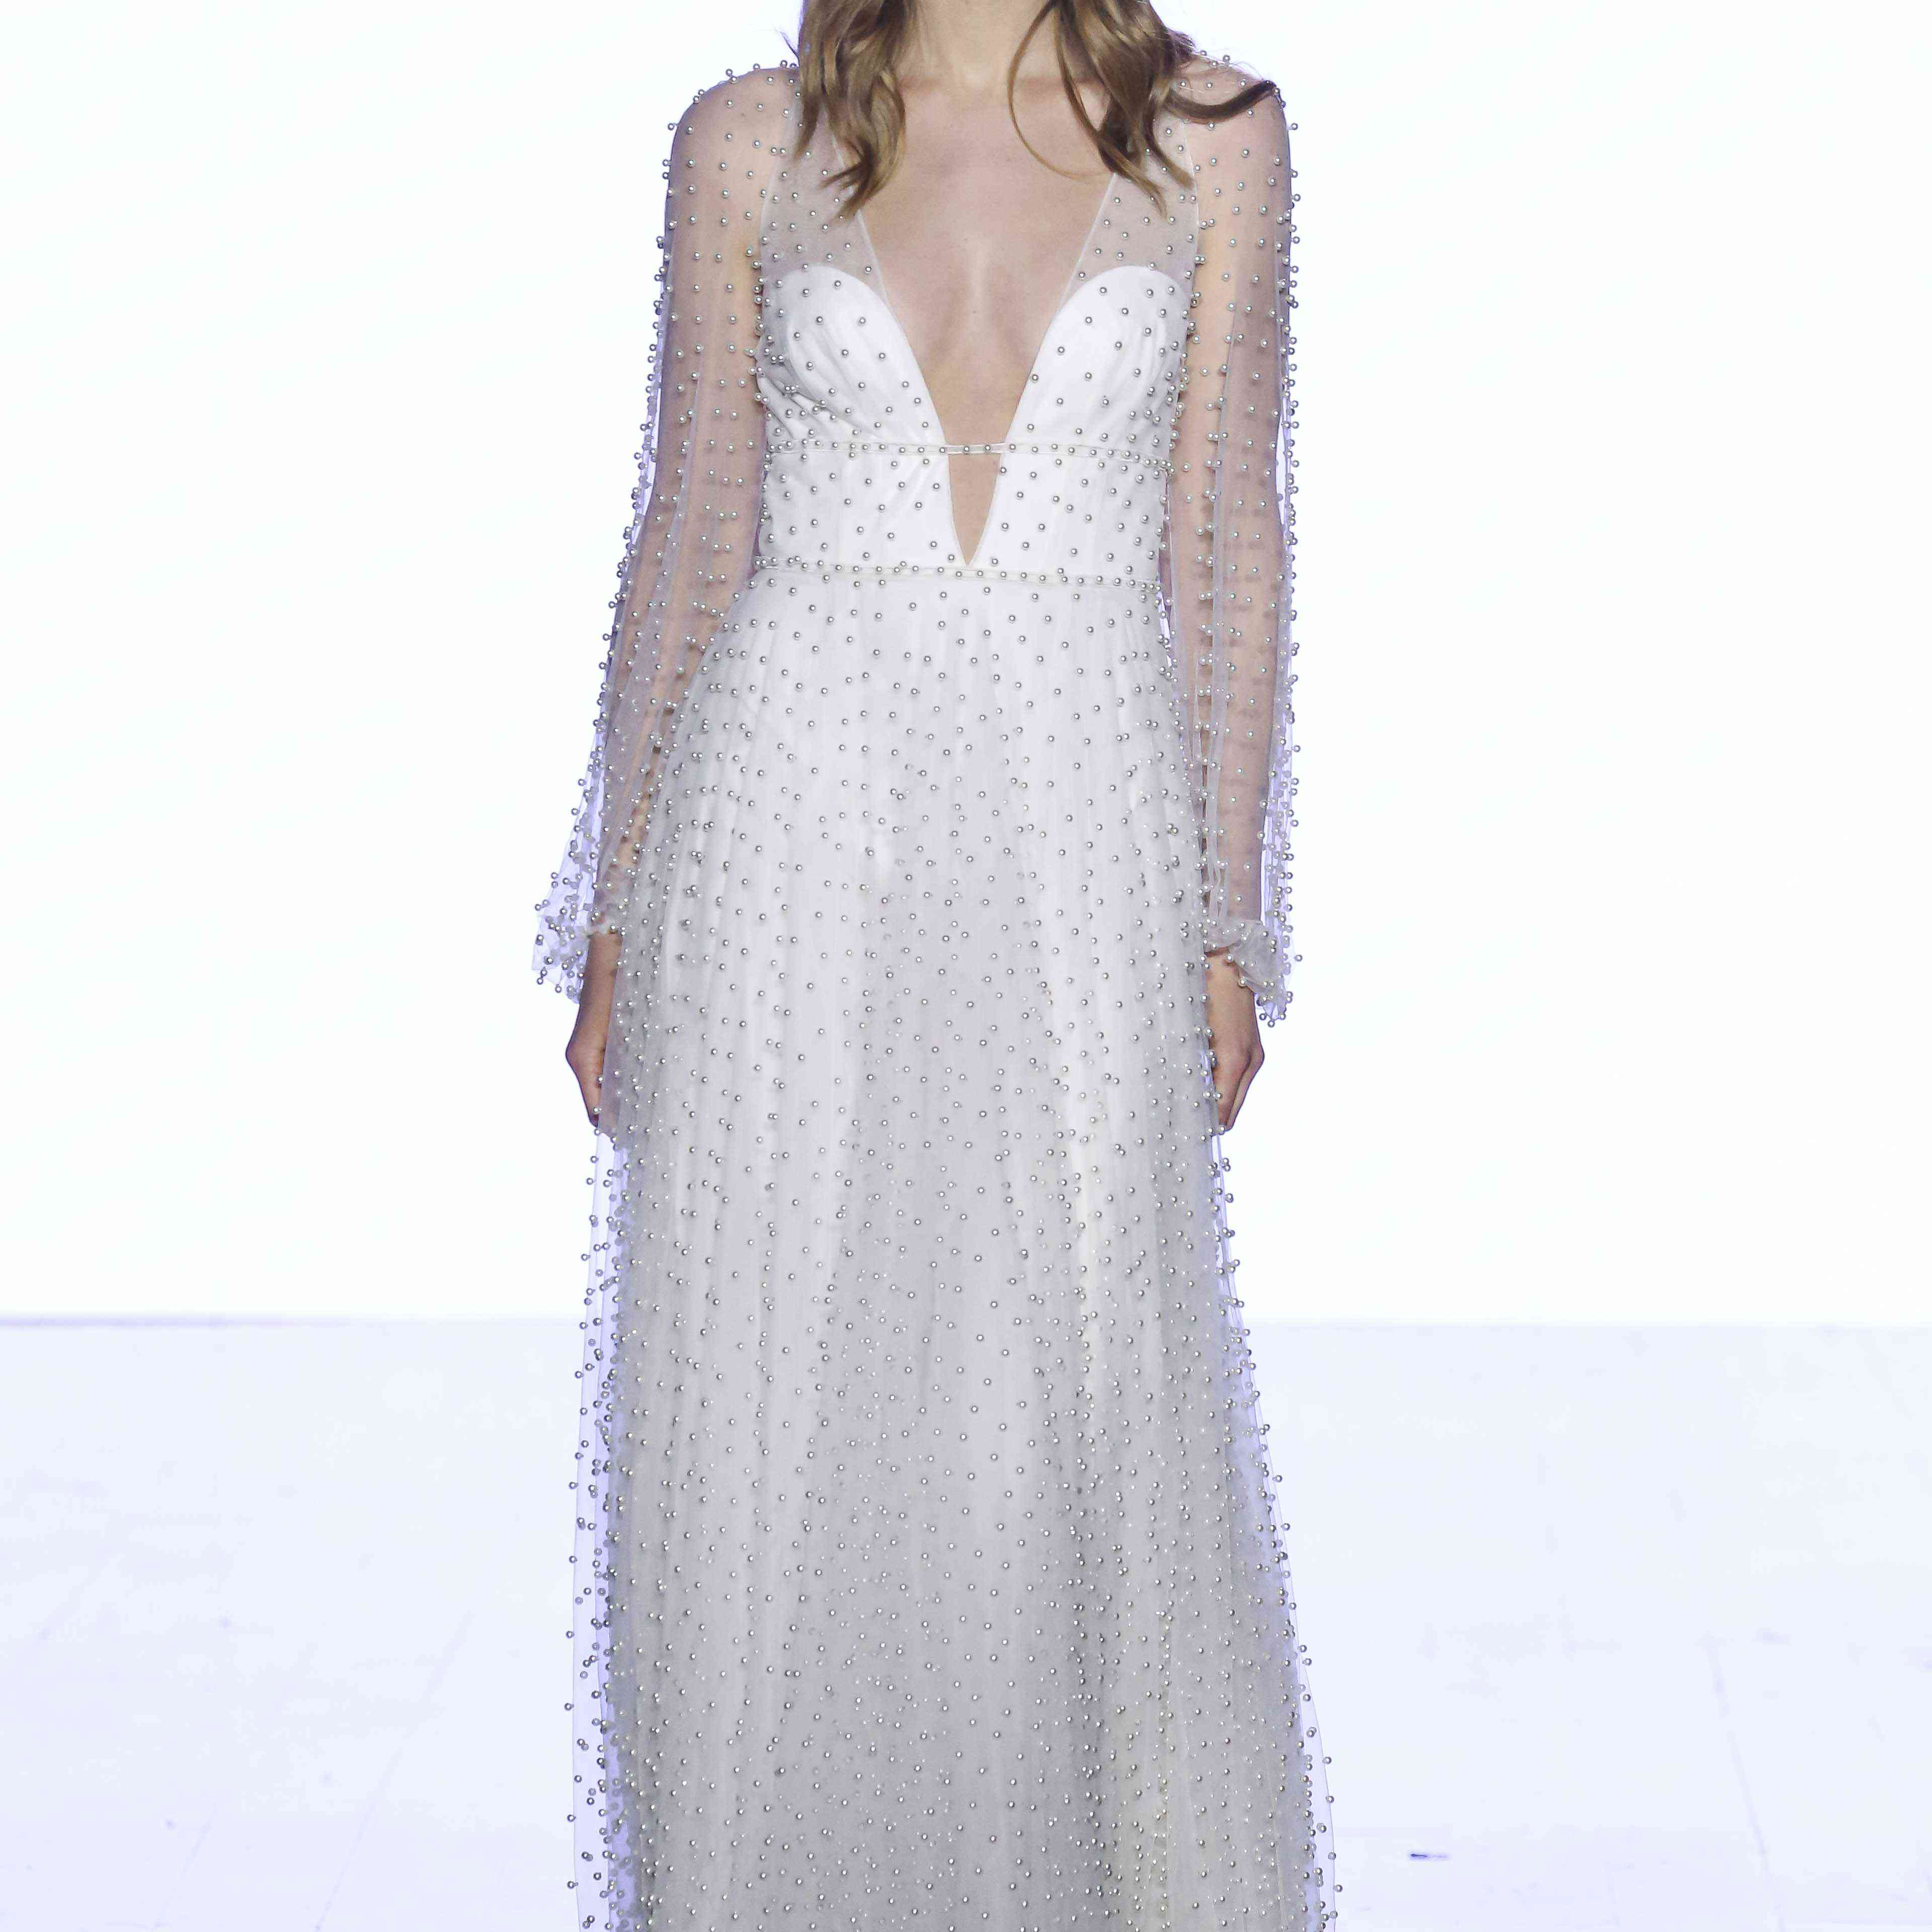 Model in long-sleeve V-neck illusion tulle gown with allover sparkling stones1